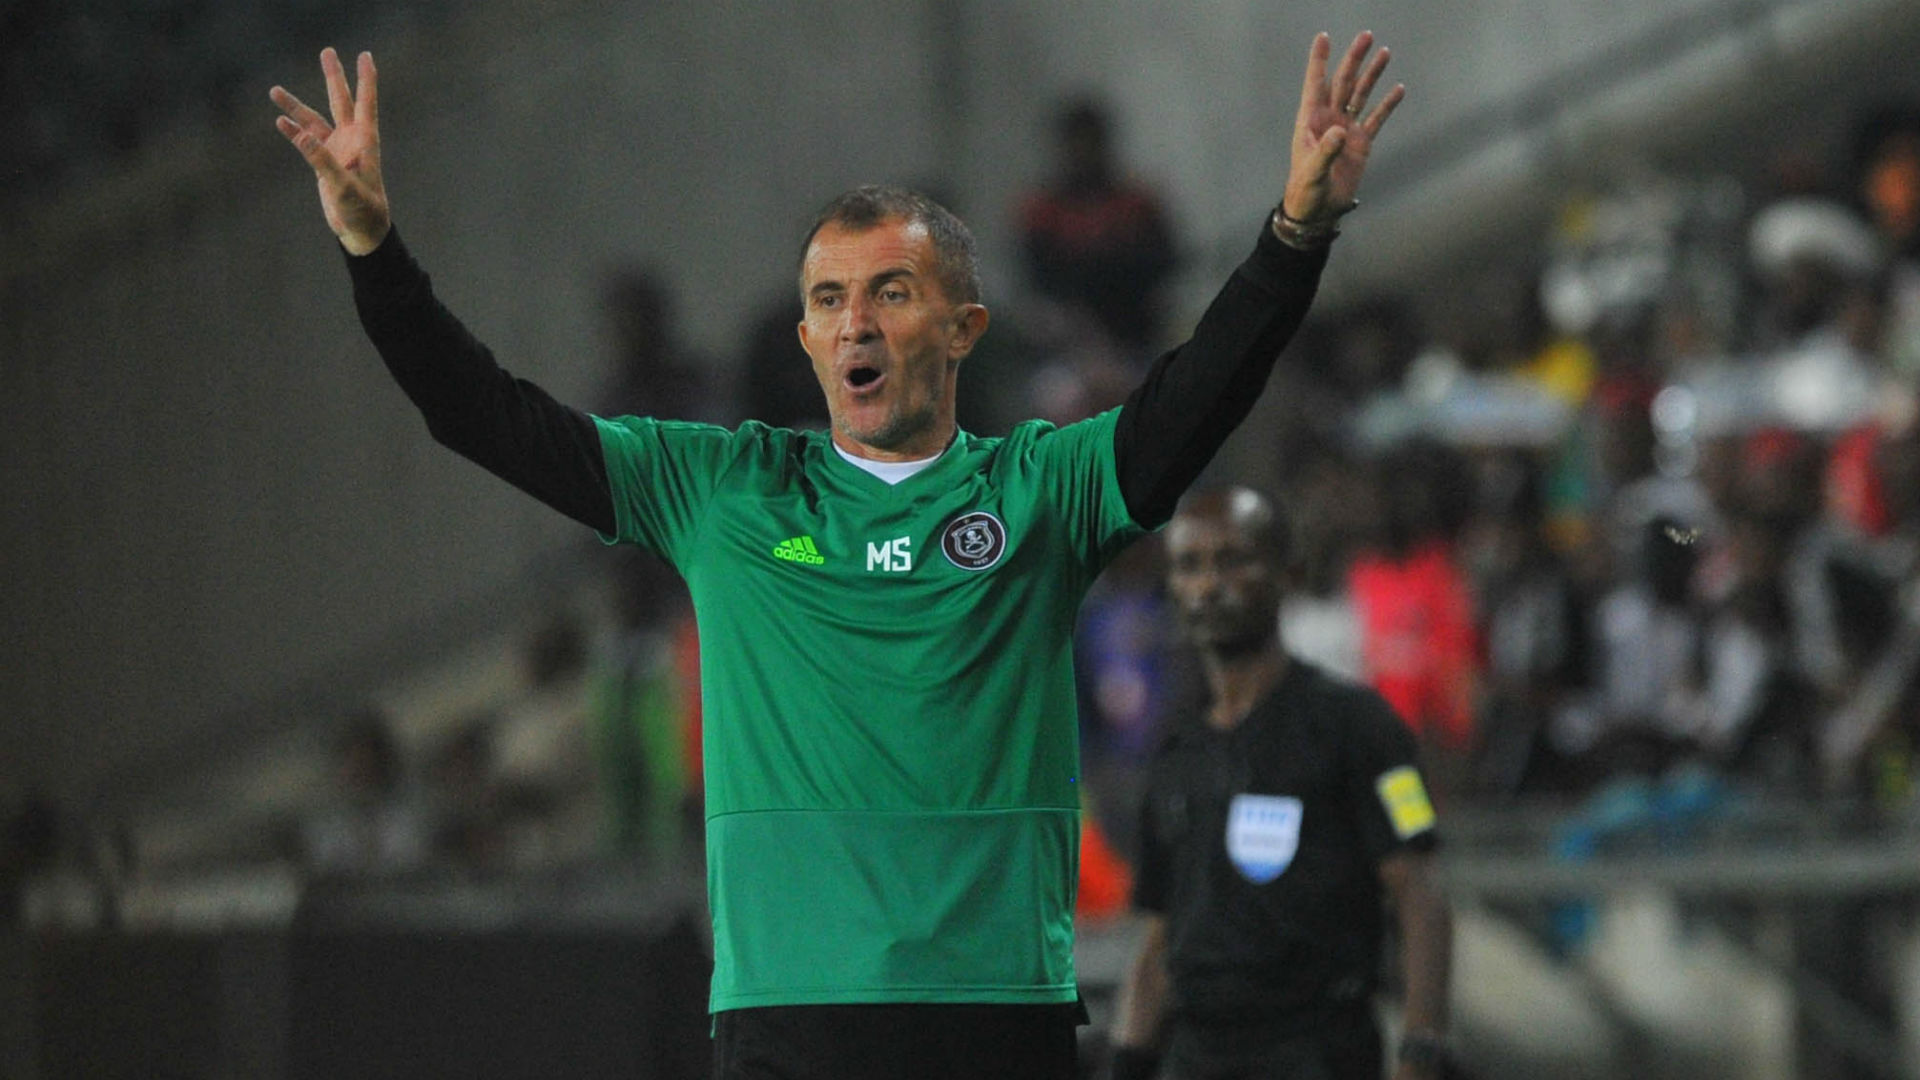 Milutin Sredojevic, Orlando Pirates, February 2019